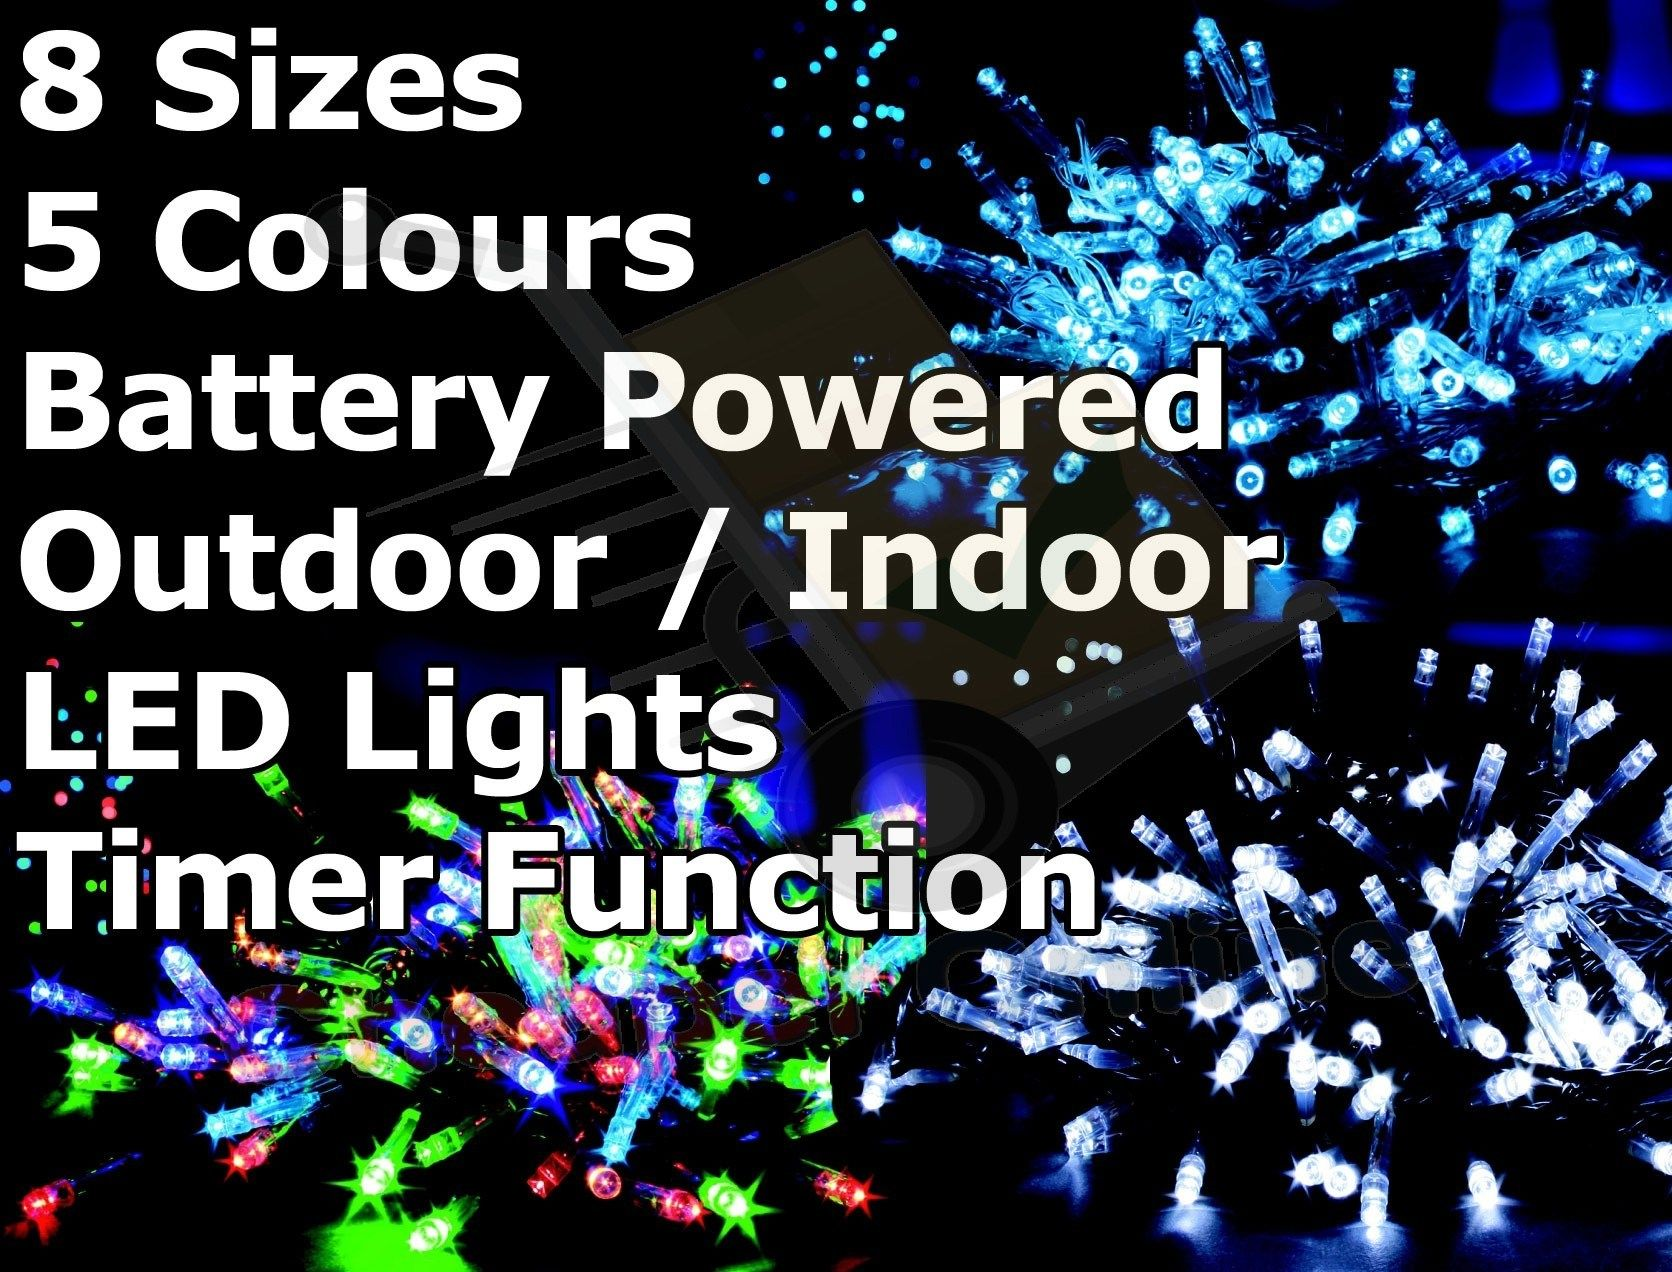 outdoor battery operated led lights with timer